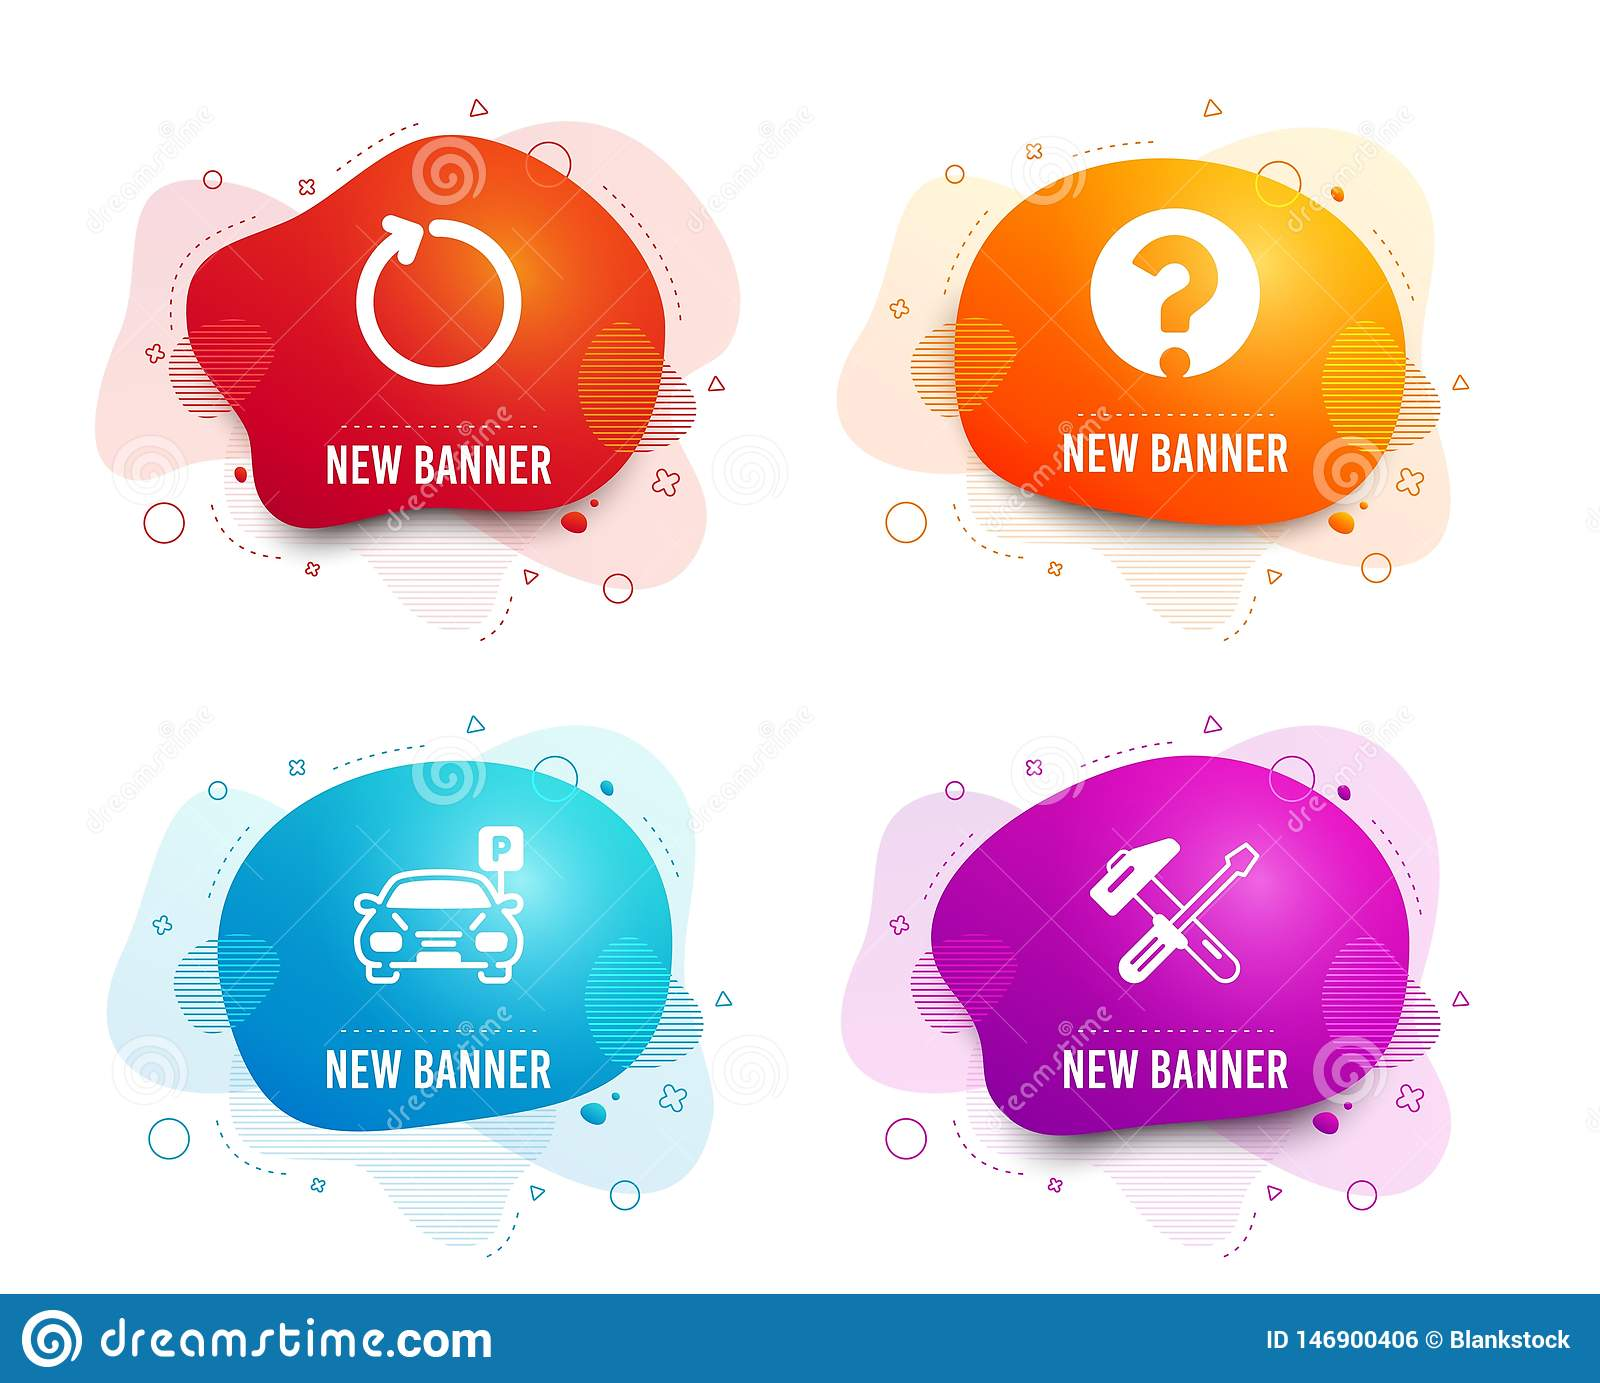 Question Mark Loop And Parking Icons Hammer Tool Sign Ask Support Refresh Car Park Repair Screwdriver Vector Stock Vector Illustration Of Icon Banner 146900406